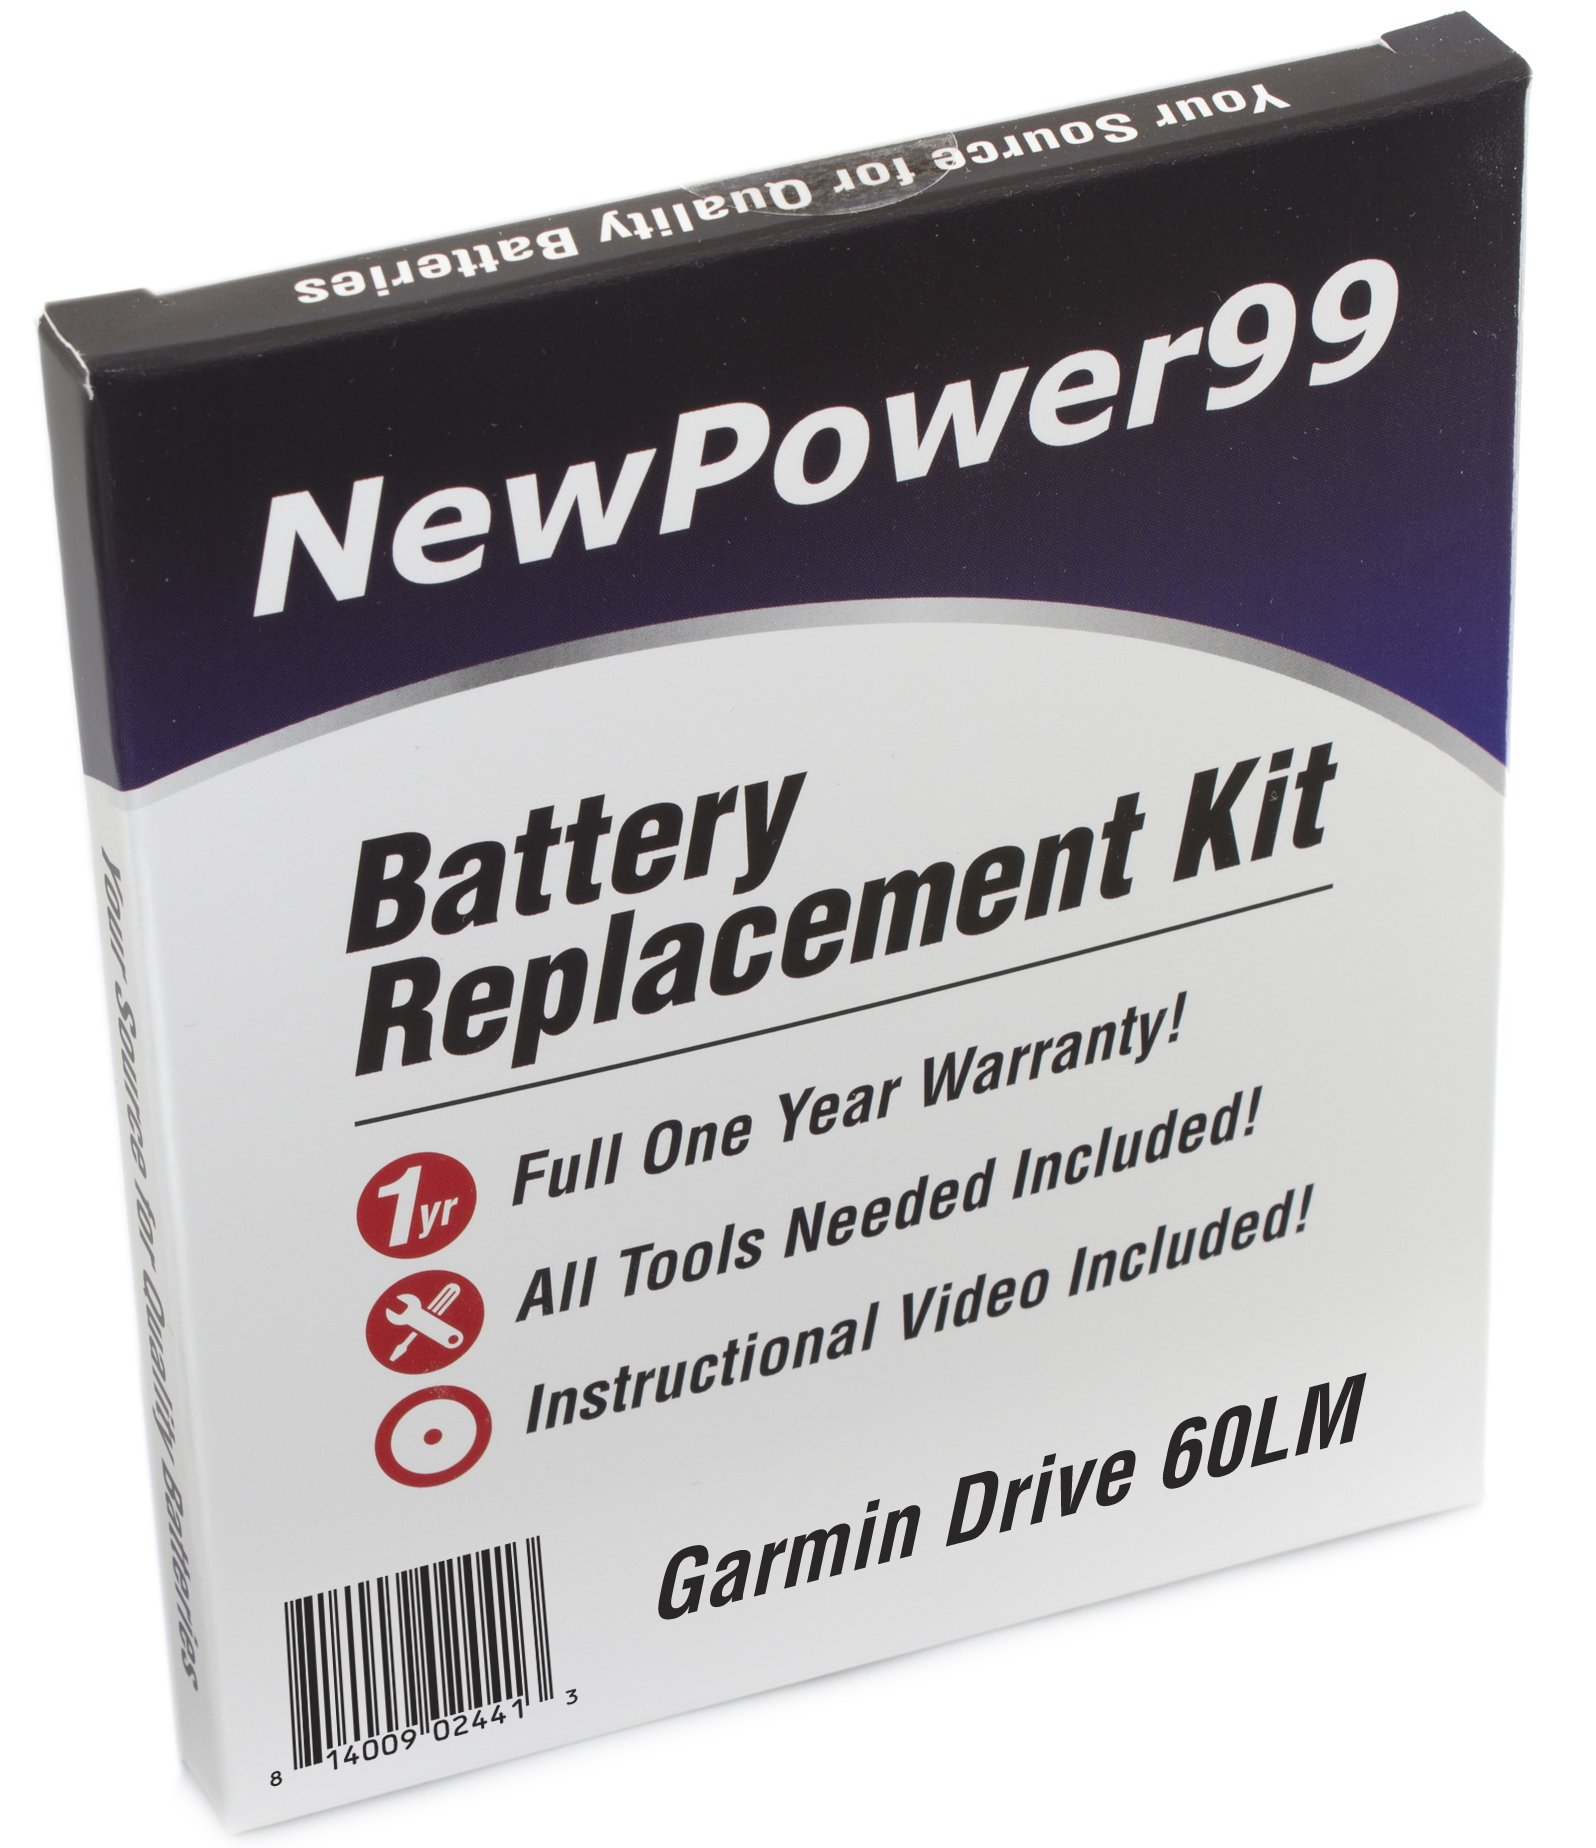 NewPower99 Battery Replacement Kit for Garmin Drive 60LM with Installation Video, Tools, and Extended Life Battery. by NewPower99